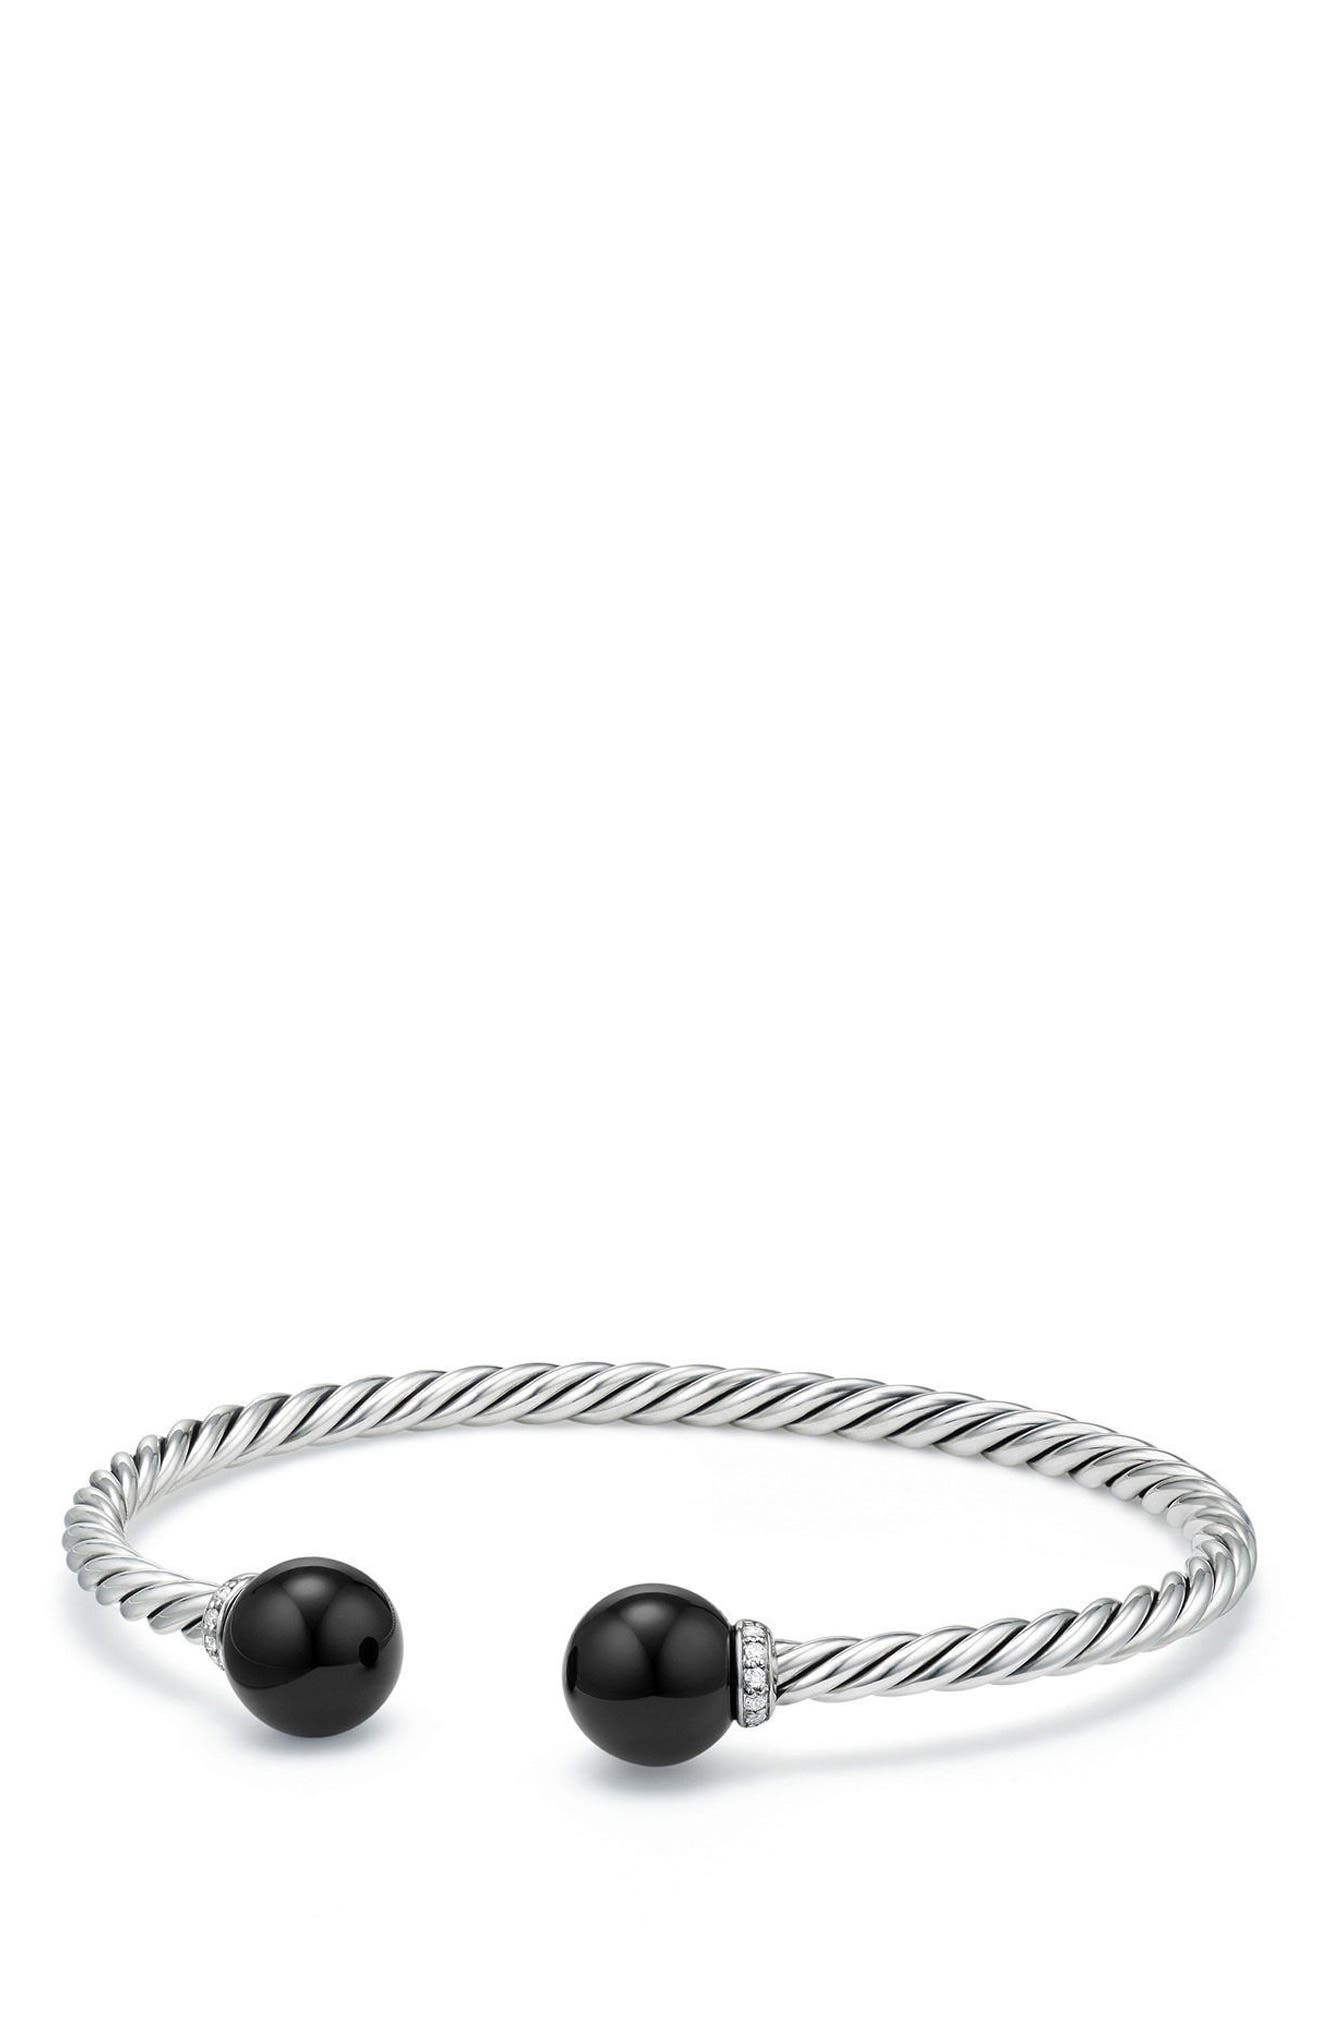 Solari Bead Bracelet with Diamonds,                             Main thumbnail 1, color,                             SILVER/ DIAMOND/ BLACK ONYX